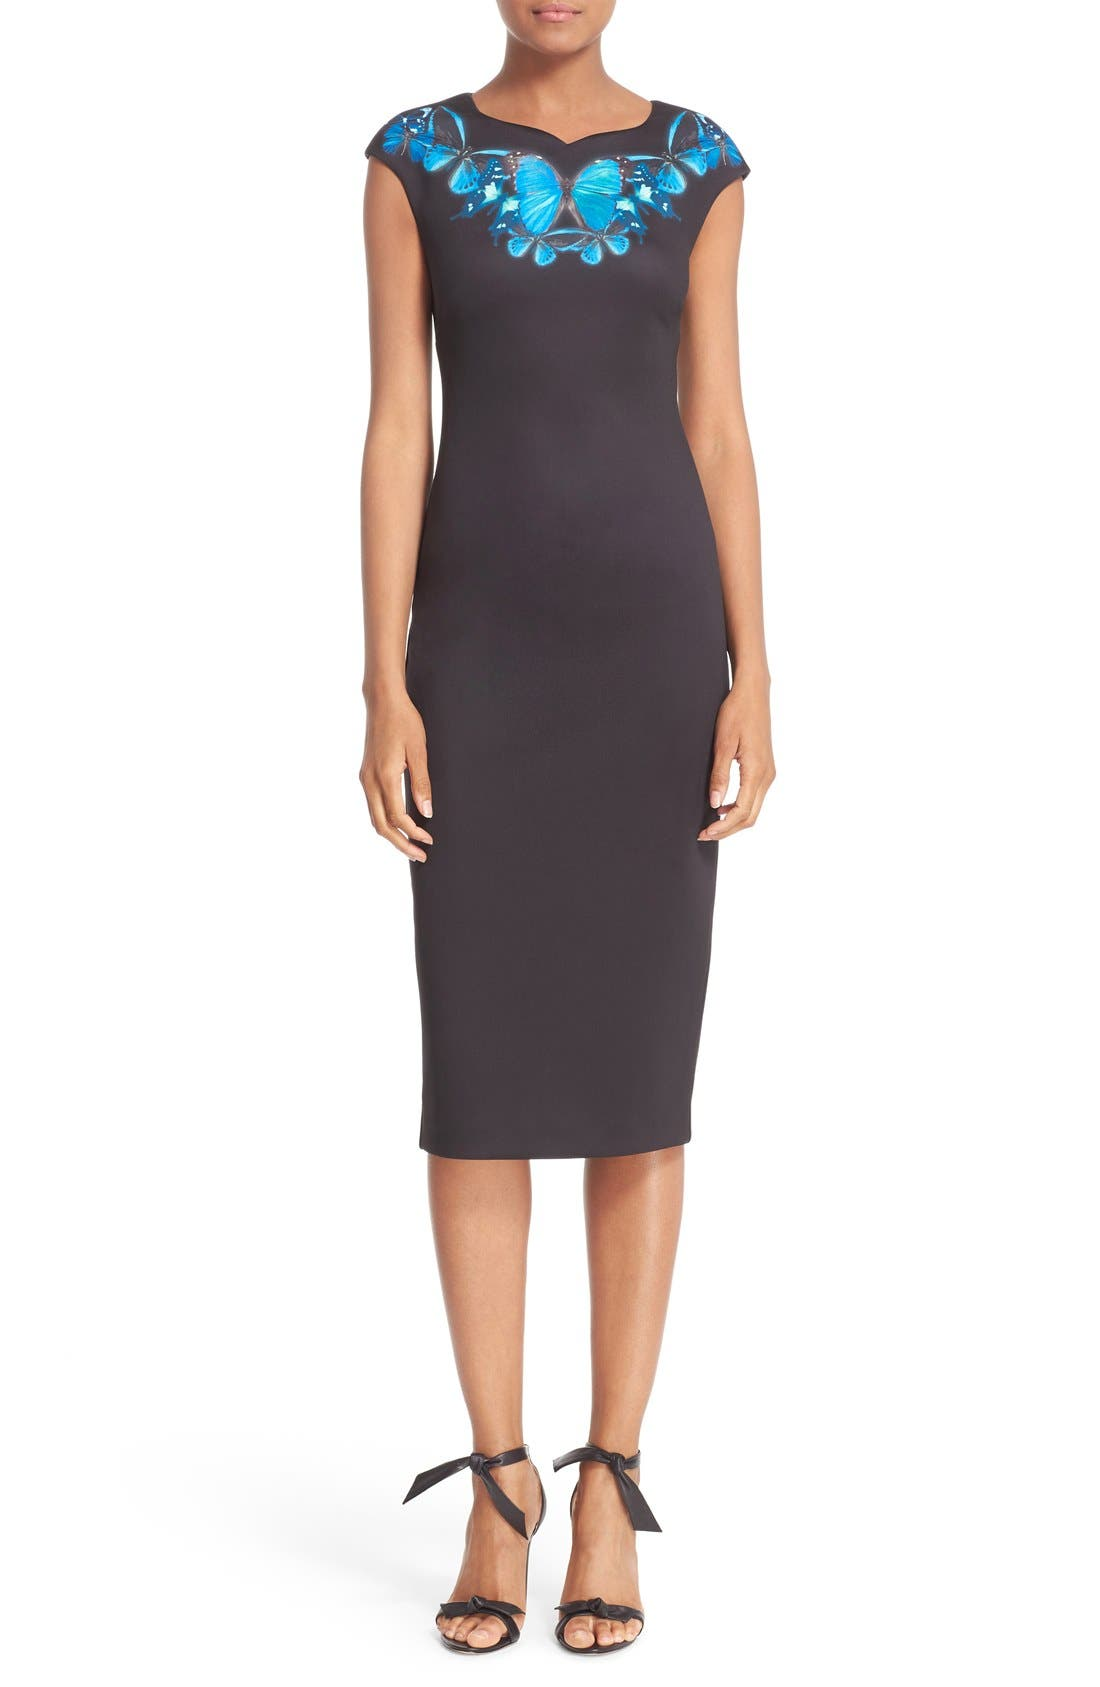 'Ashley - Butterfly Necklace' Sheath Dress,                             Main thumbnail 1, color,                             001